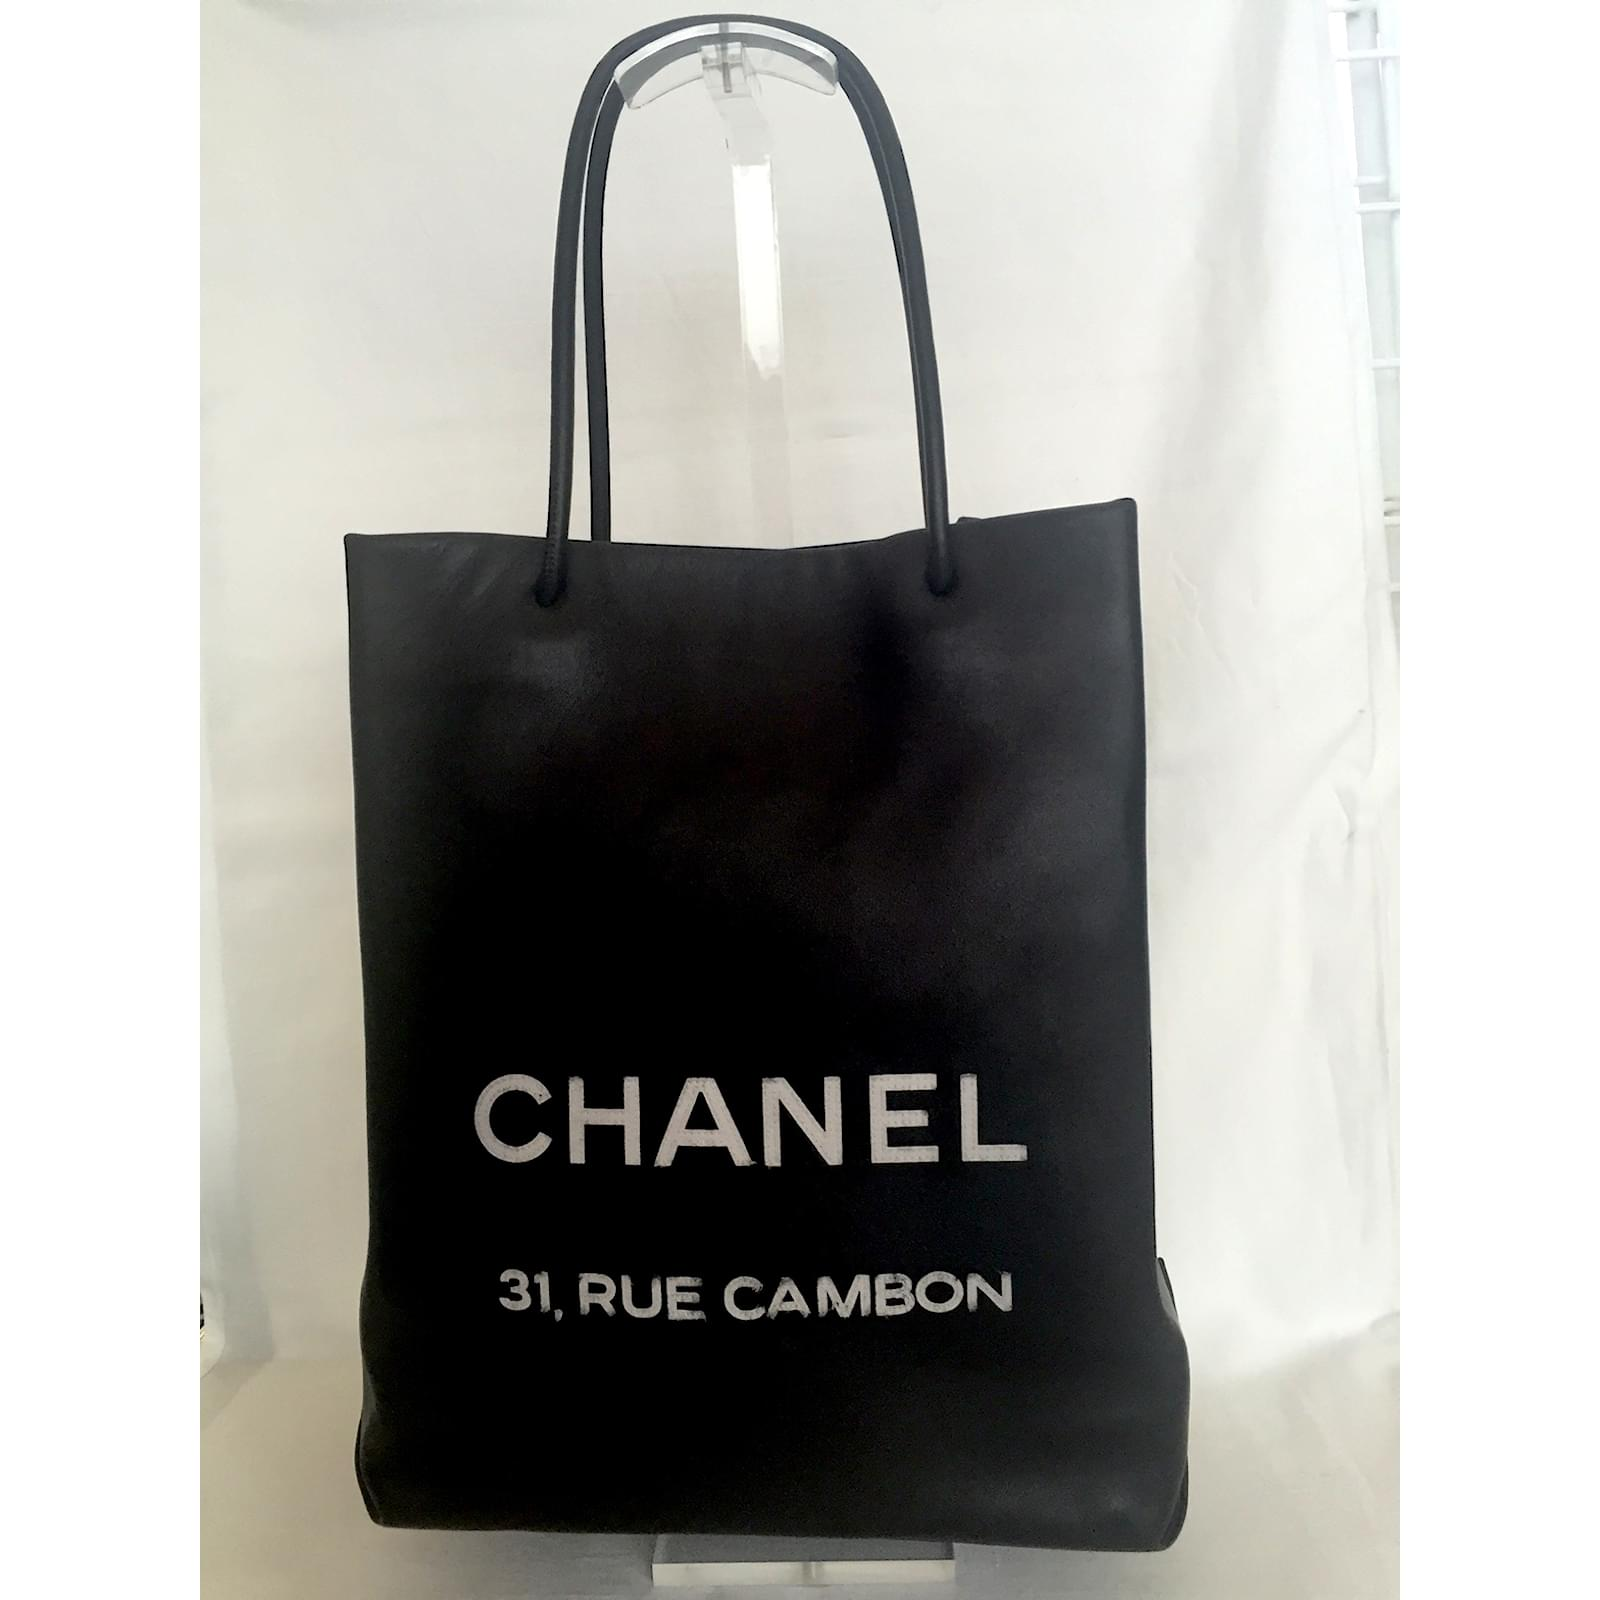 0a5c0b3c1090 ... 31 Rue Cambon bag Source · Chanel Chanel leather shopping tote Rue  Cambon Handbags Leather